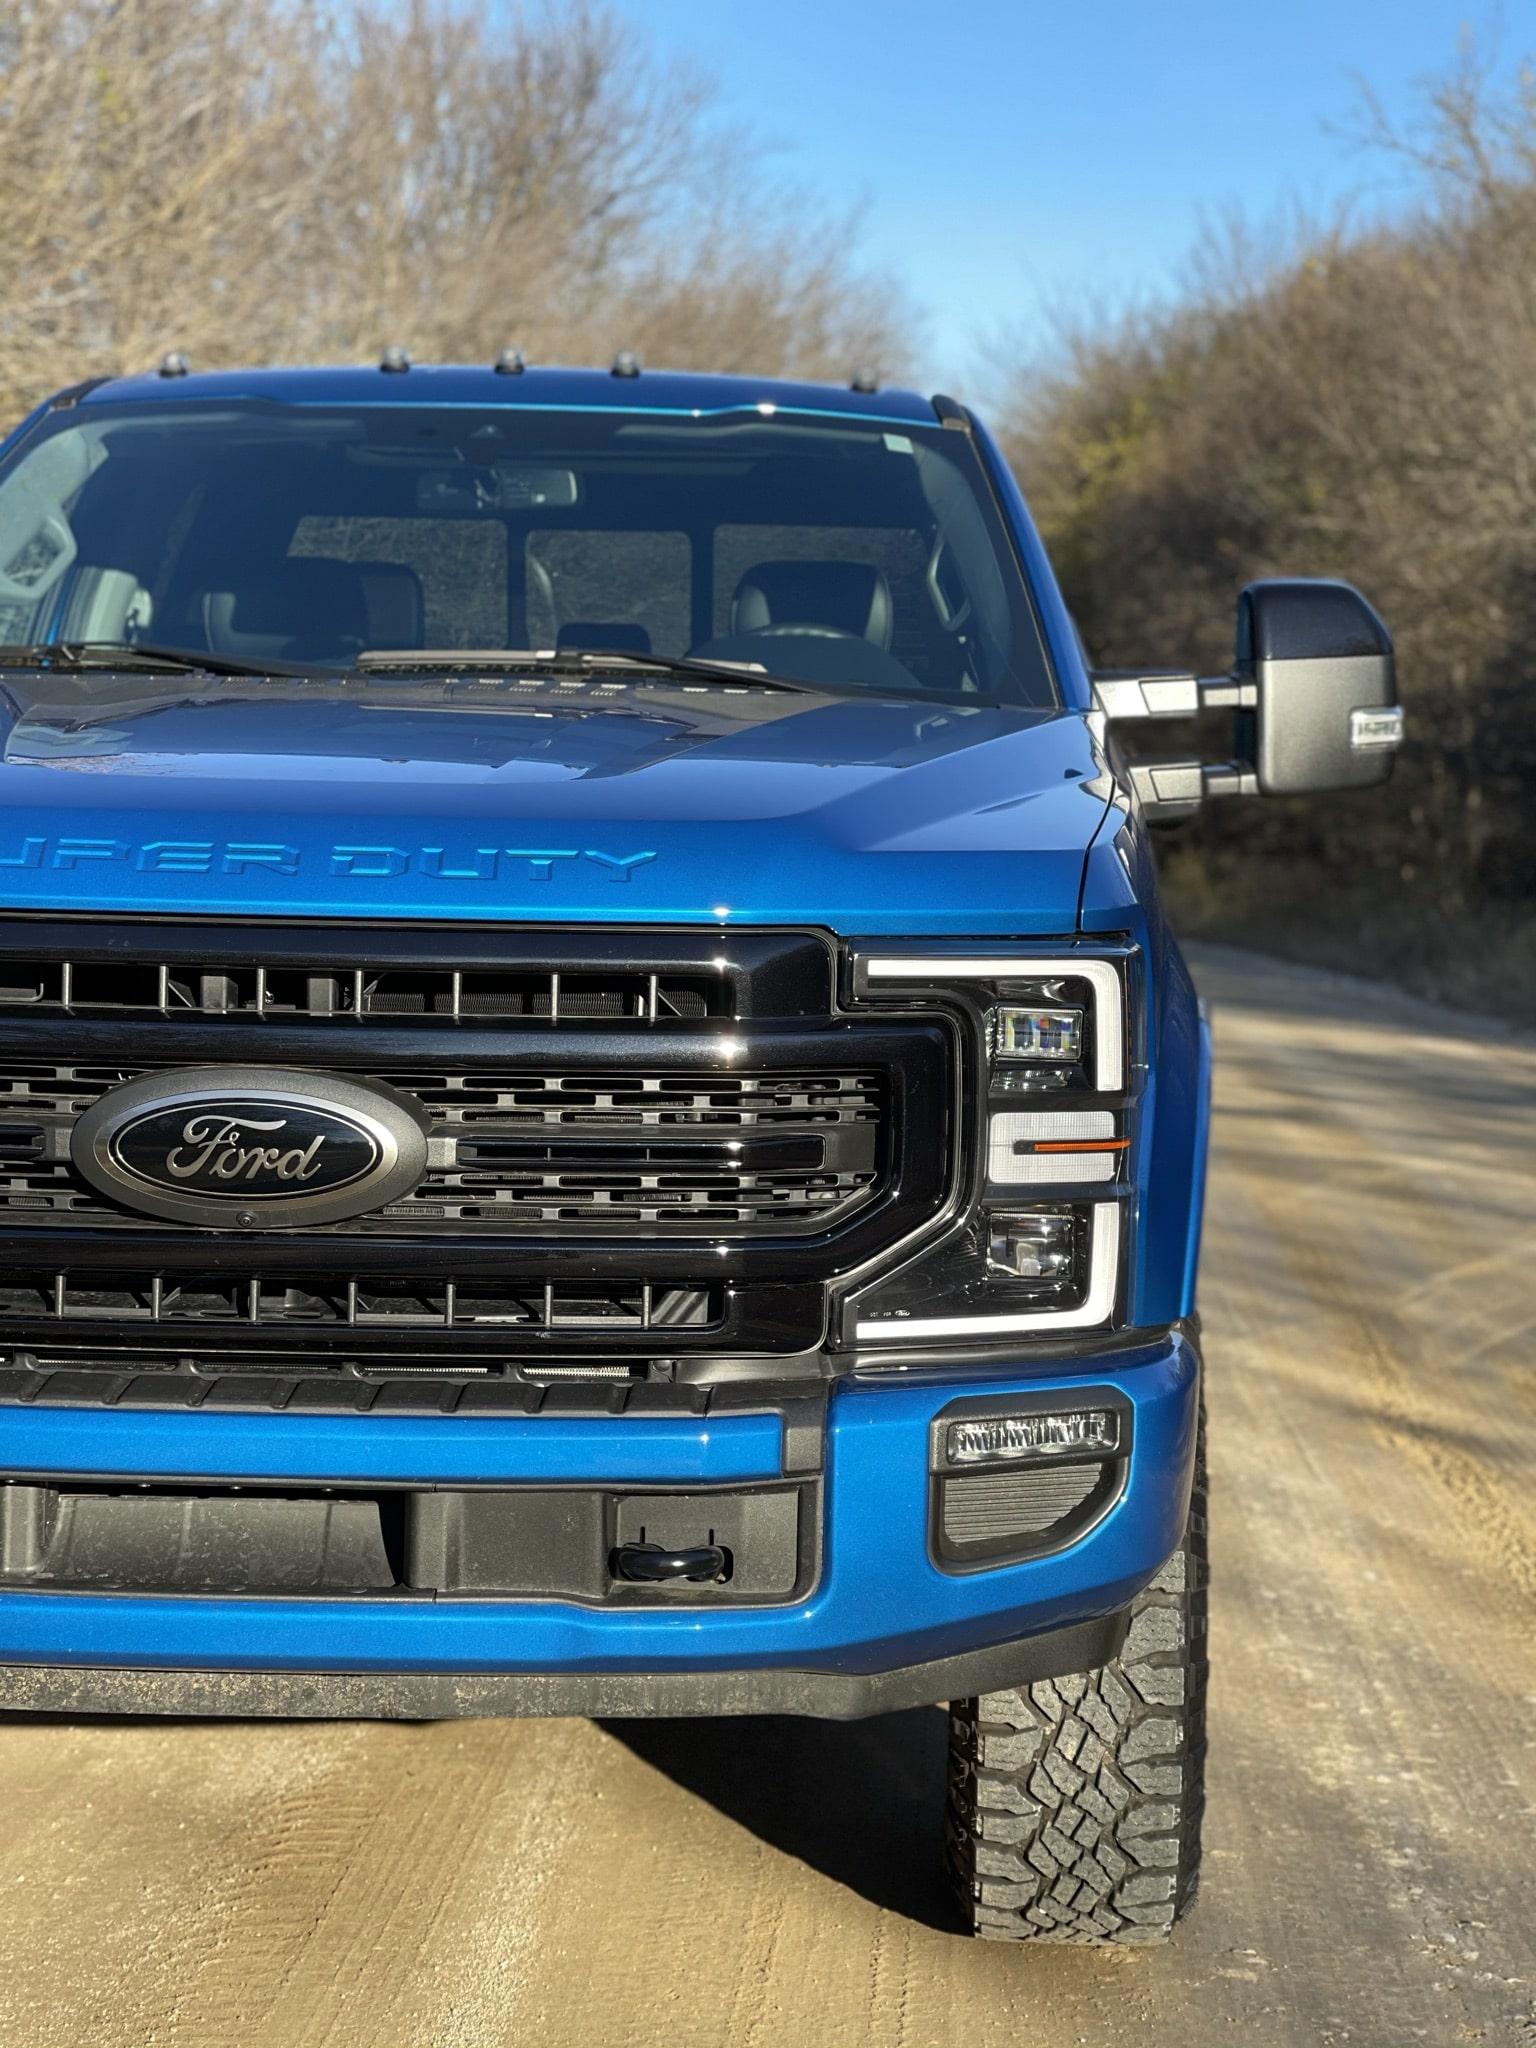 We Test Drove the Ford F250 Super Duty Tremor